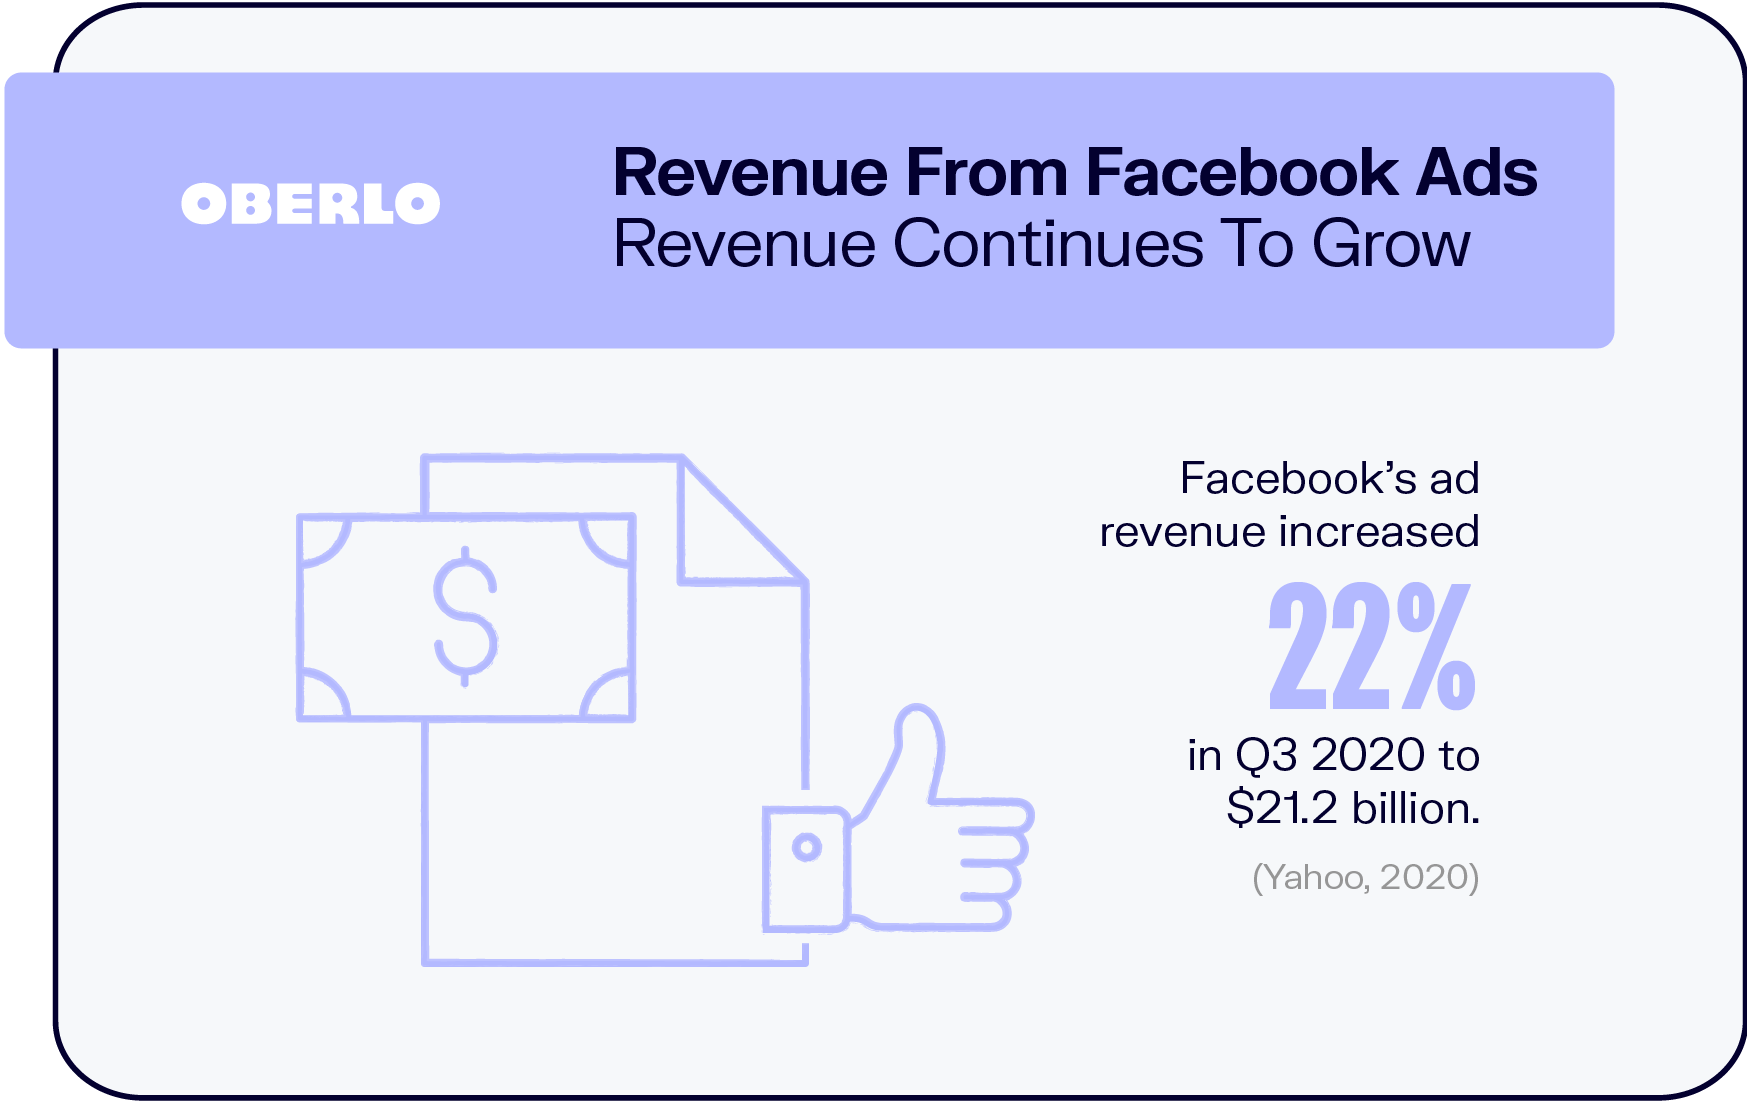 Revenue From Facebook Ads Revenue Continues To Grow